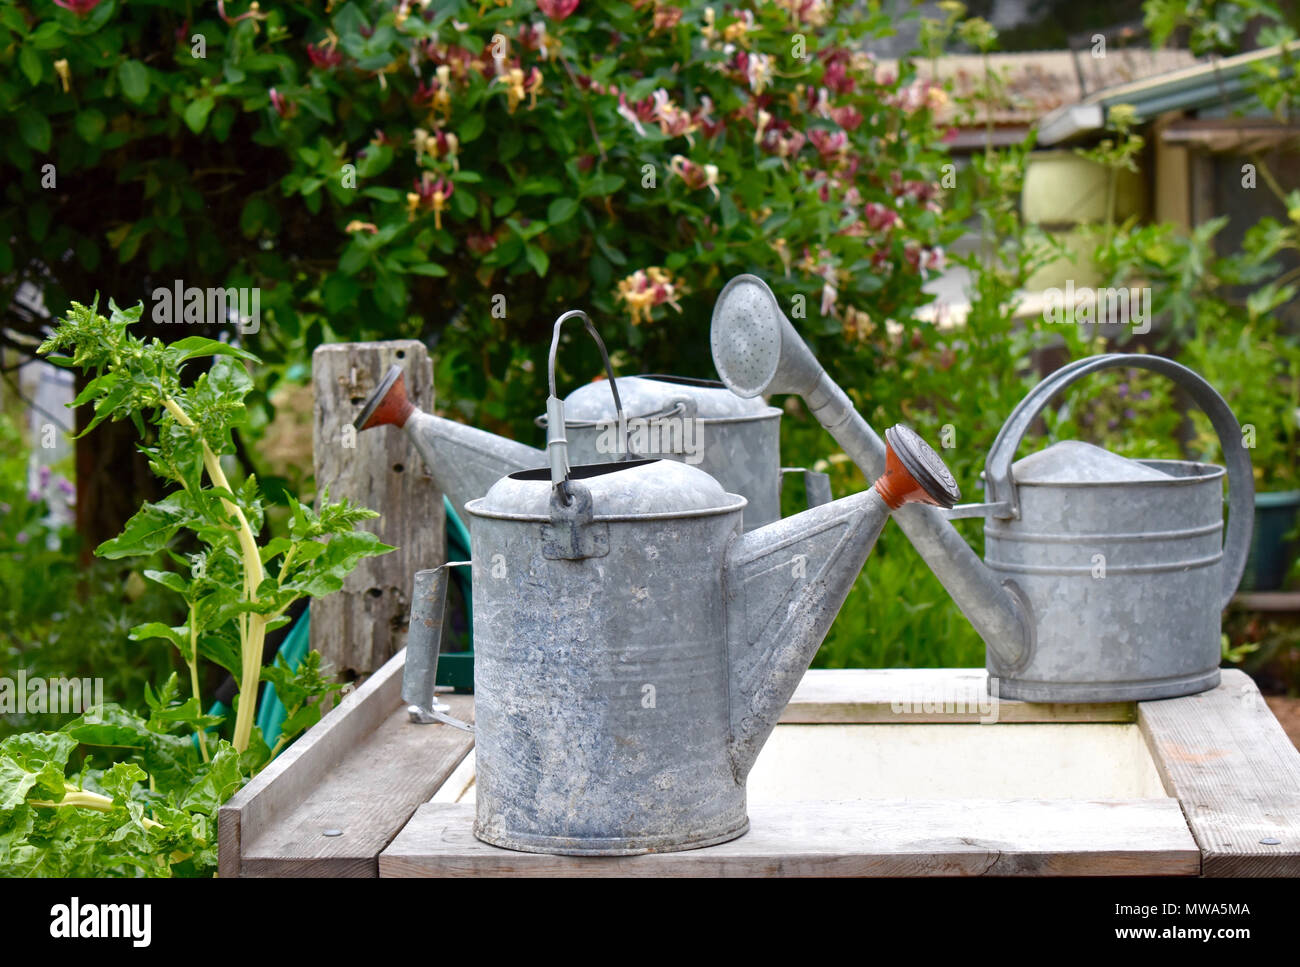 Collection of Watering Cans in a Community Garden - Stock Image